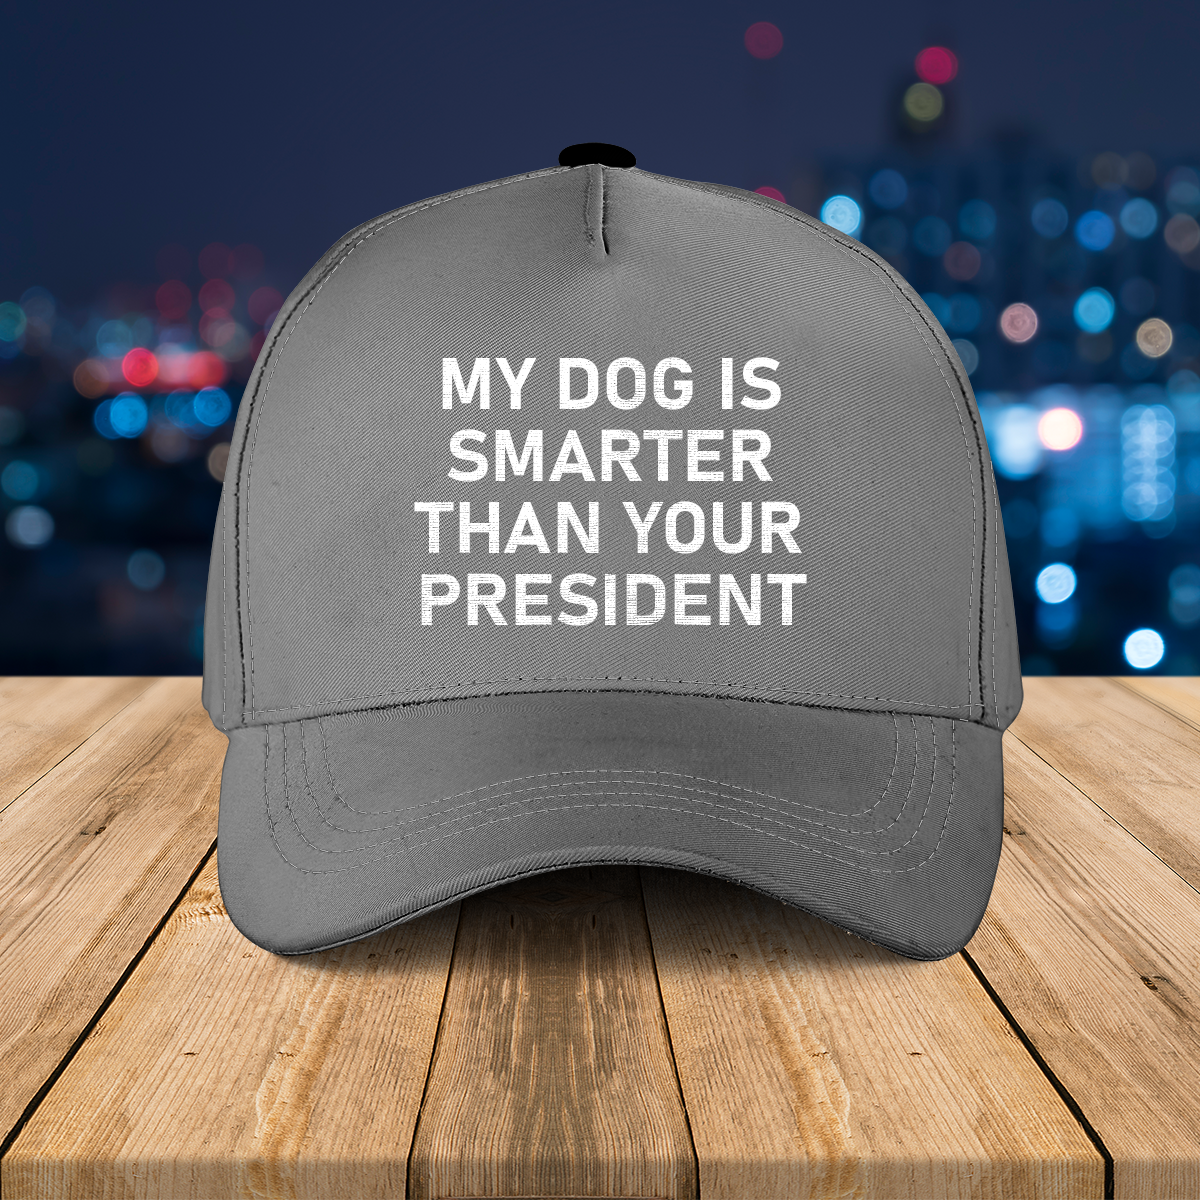 My dog Is smarter than your president cap